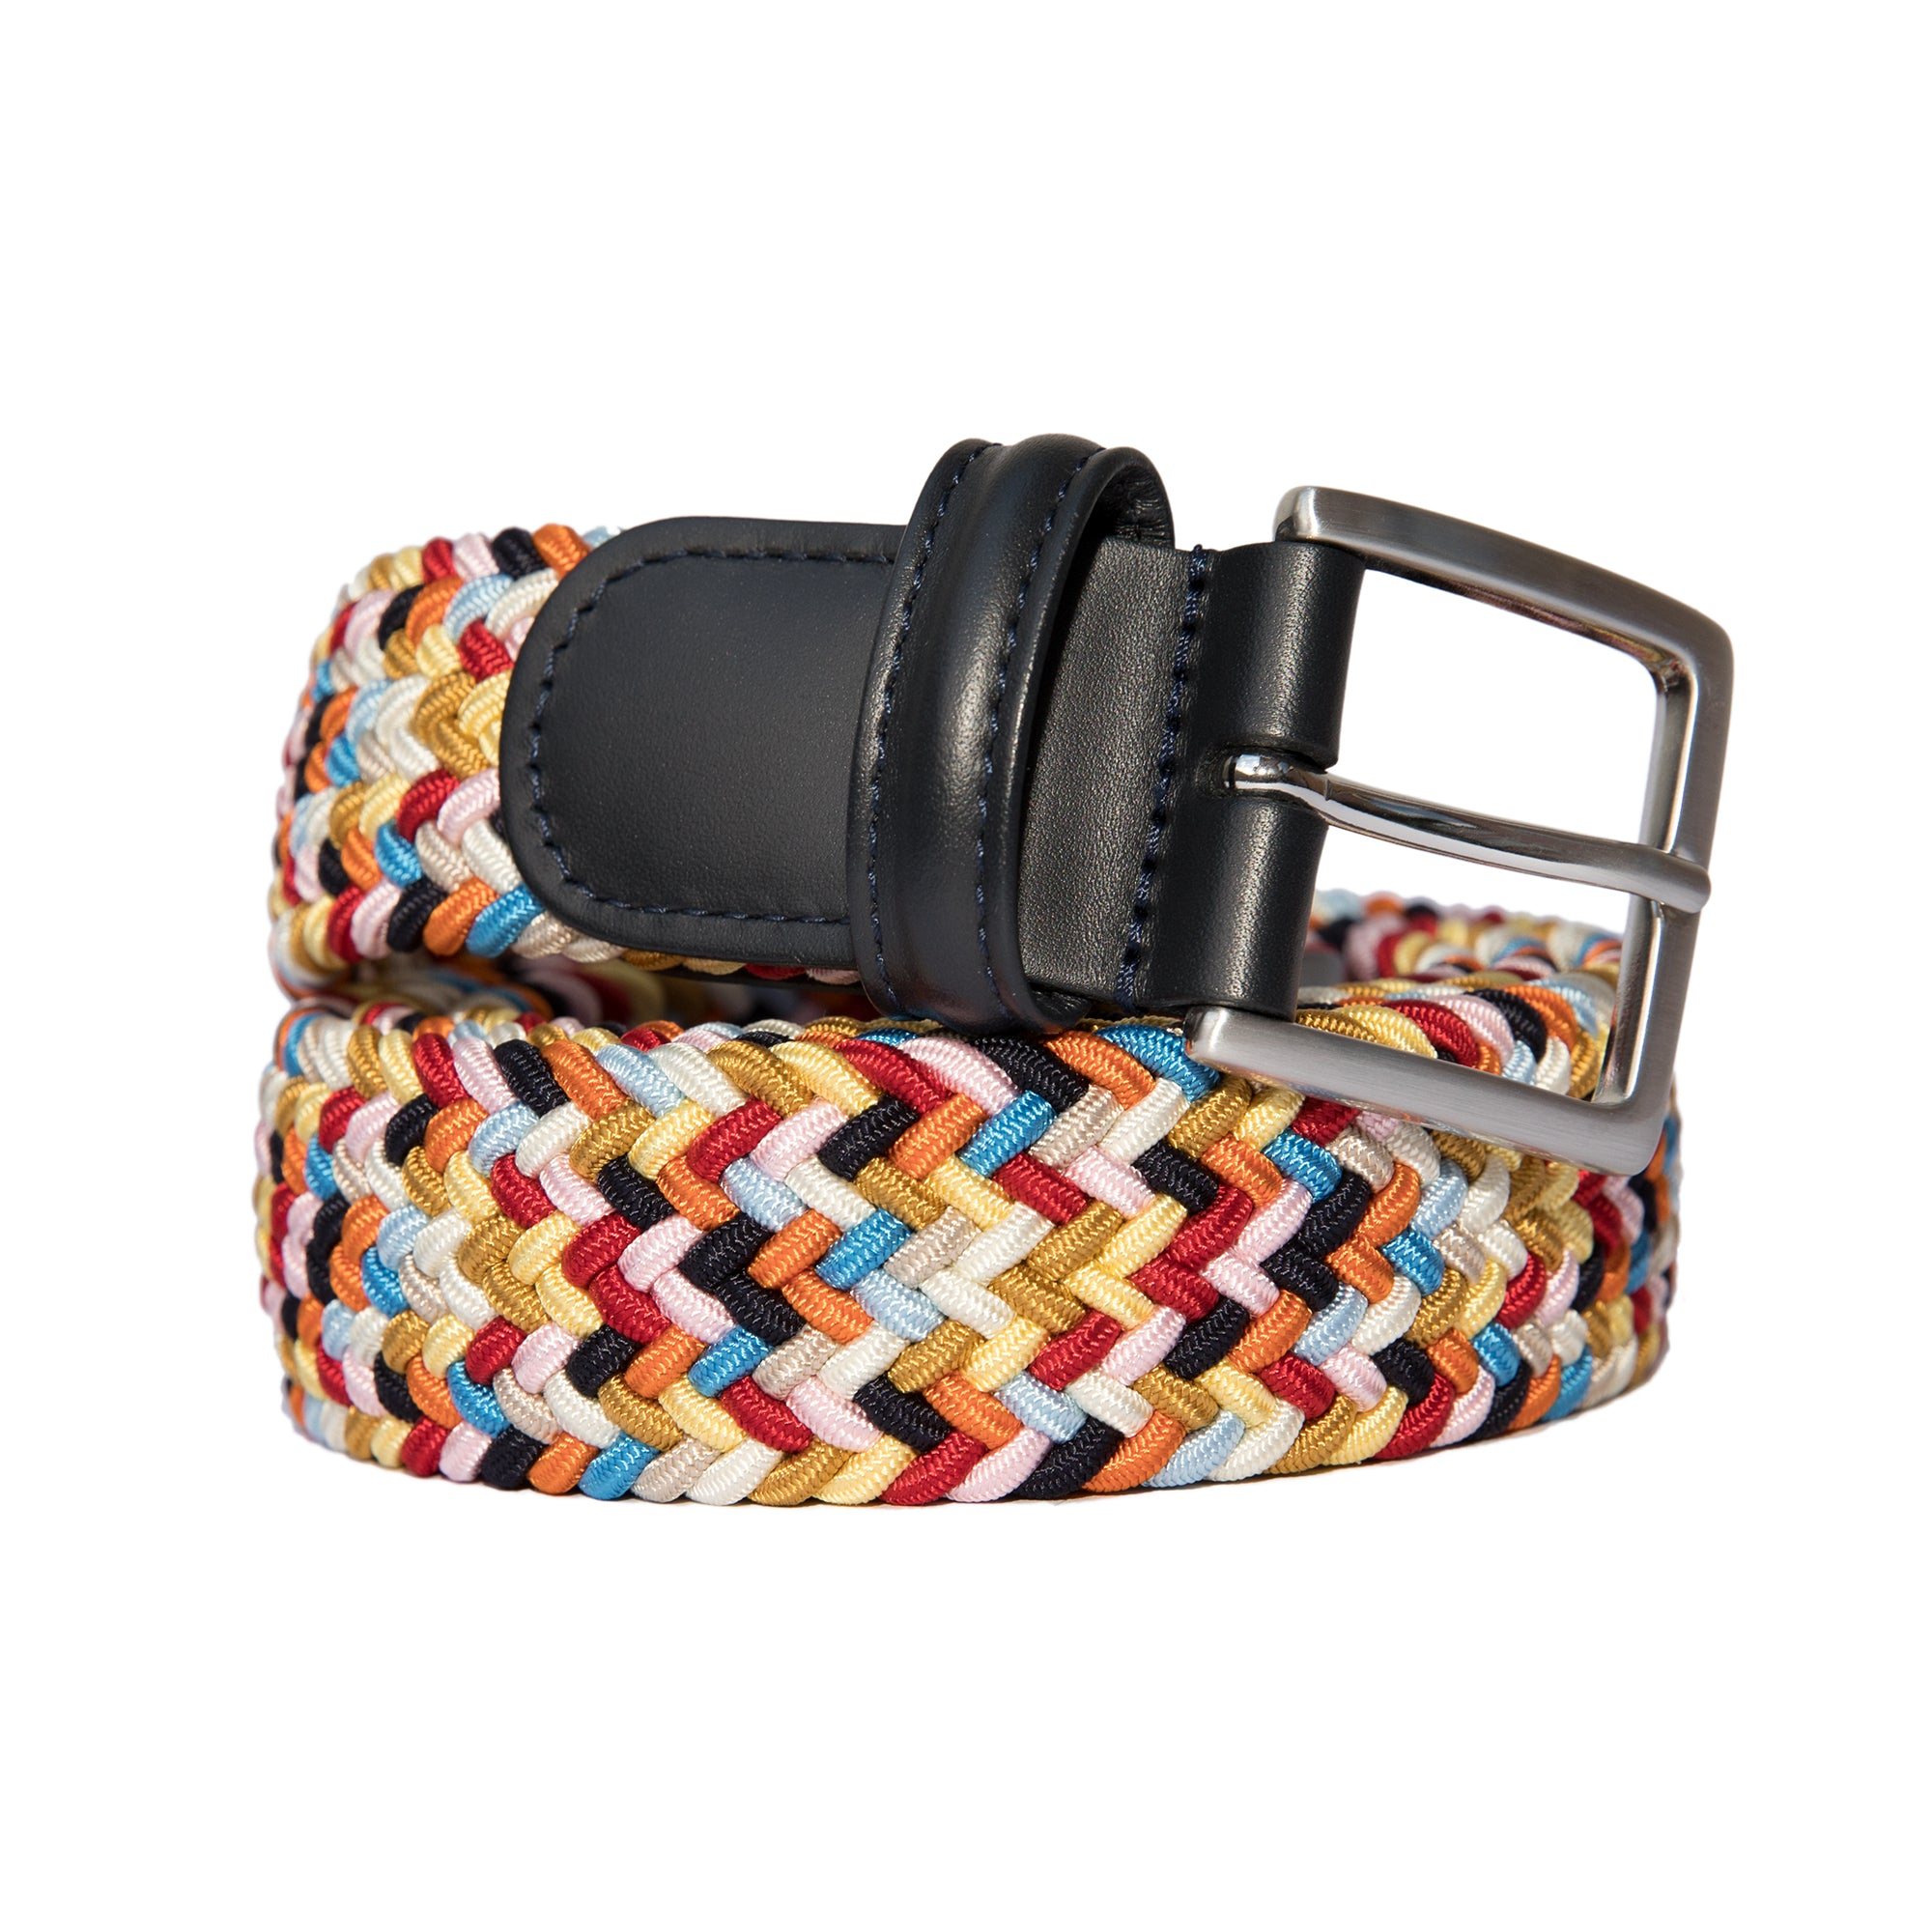 Woven Elastic Belt - Multicolour Bright